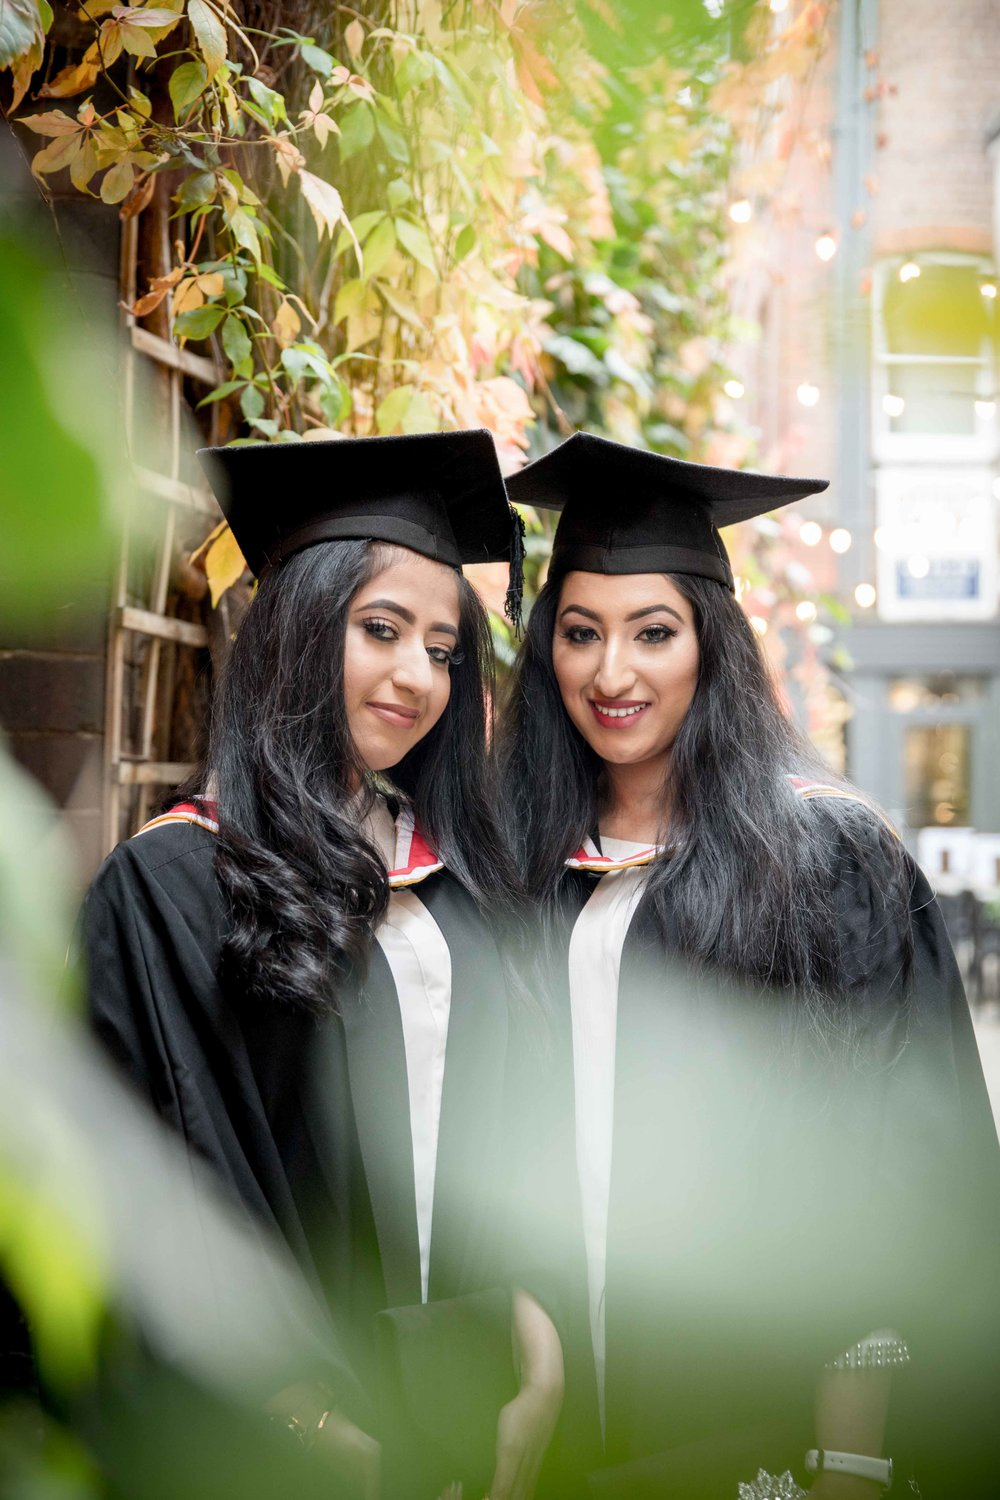 chester-university-graduation-ceremony-photography-photoshoot-graduation-photographer-Bristol-London-Cardiff-Birmingham-Chester-Natalia-smith-photography-2.jpg